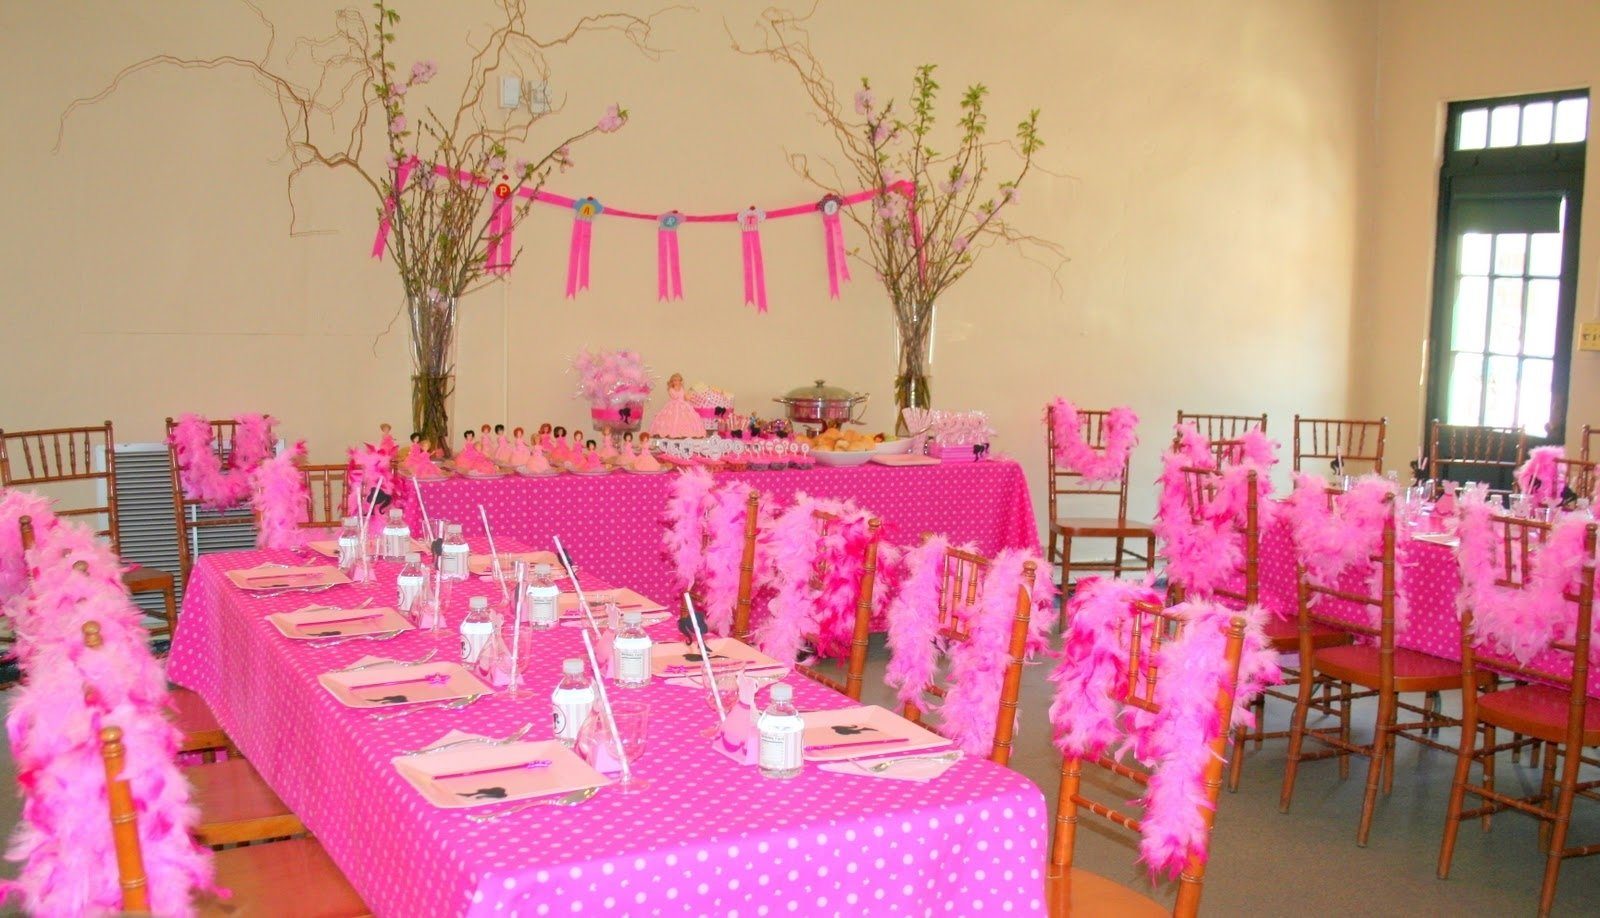 10 Fashionable 5Th Birthday Party Ideas For Girls hamptontoes my daughters 5th birthday 2020